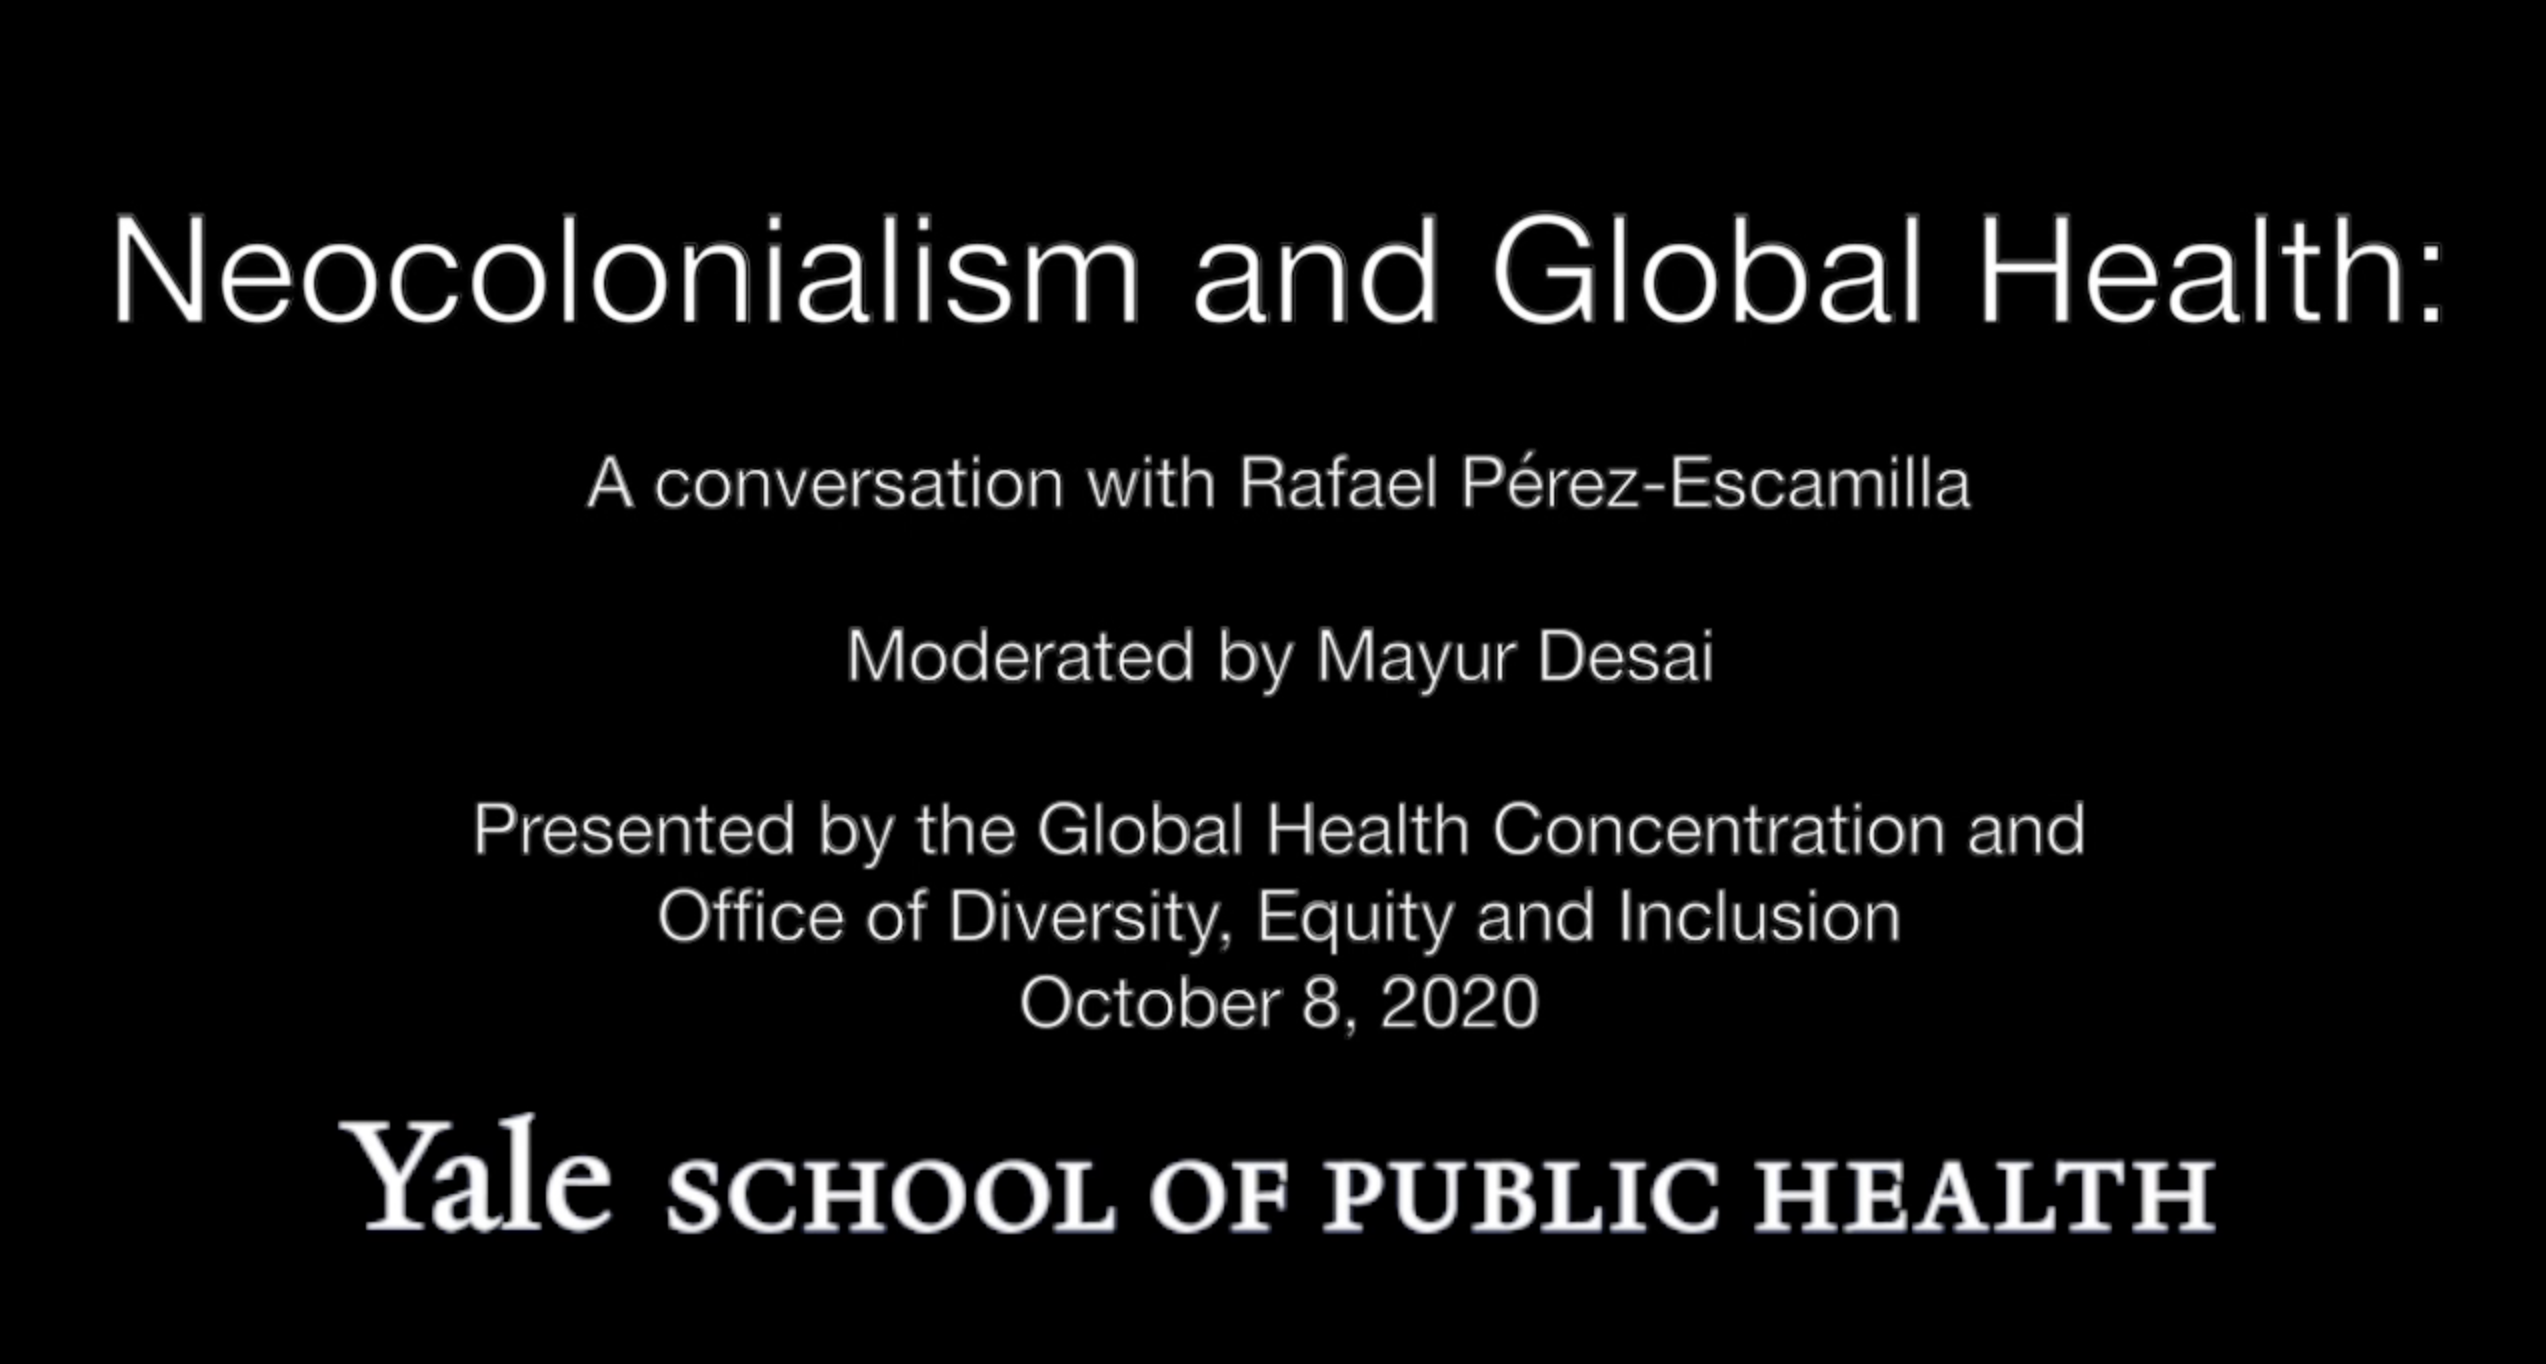 Neocolonialism and Global Health